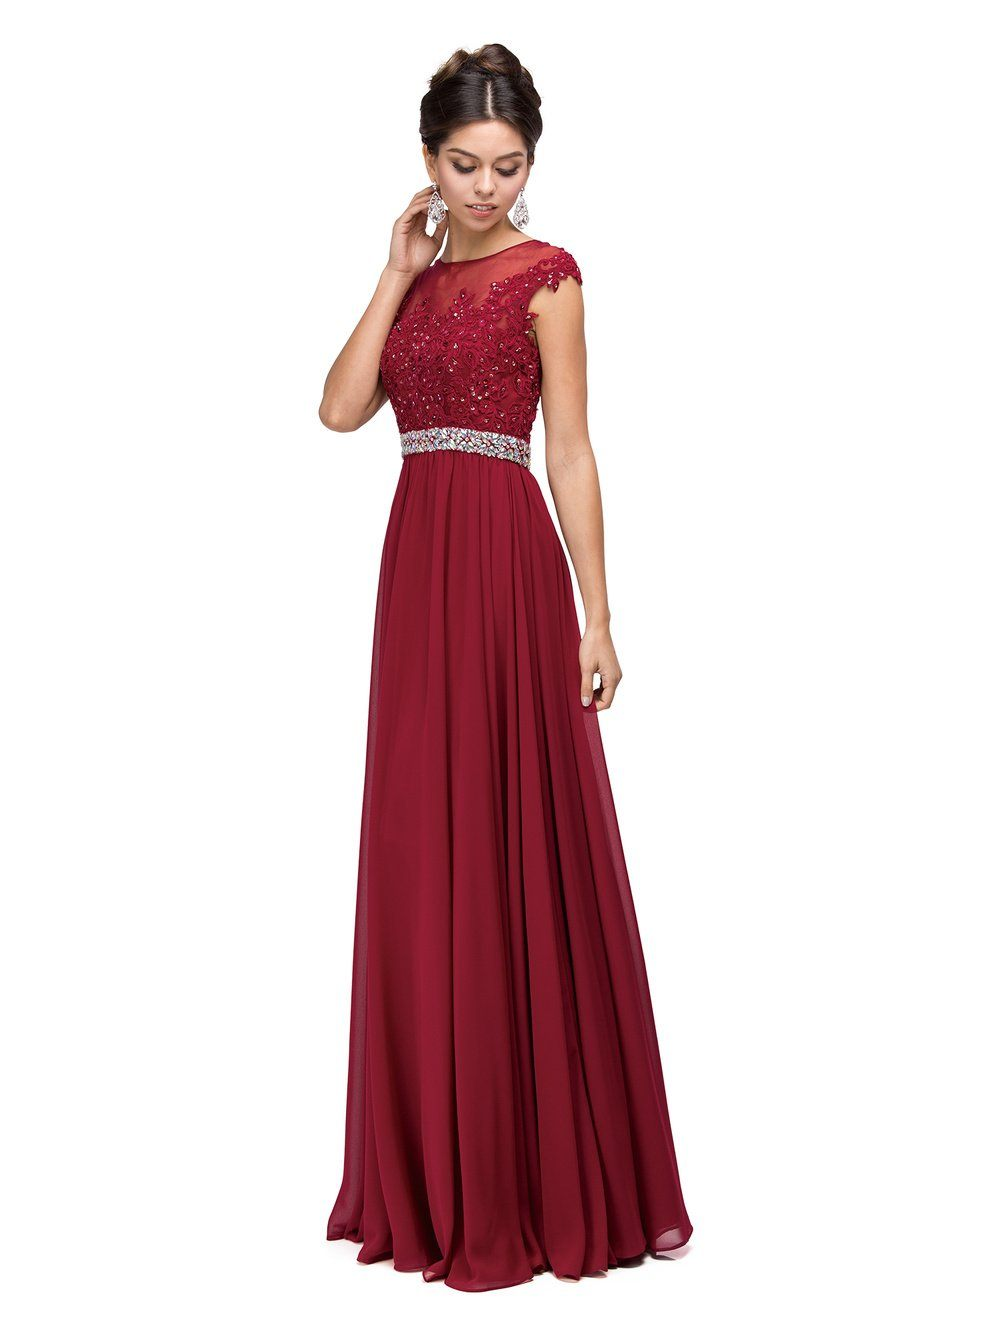 Floor length cheap chiffon bridesmaid dress dq 9400 simply fab dress floor length cheap chiffon bridesmaid dress dq 9400 simply fab dress ombrellifo Image collections